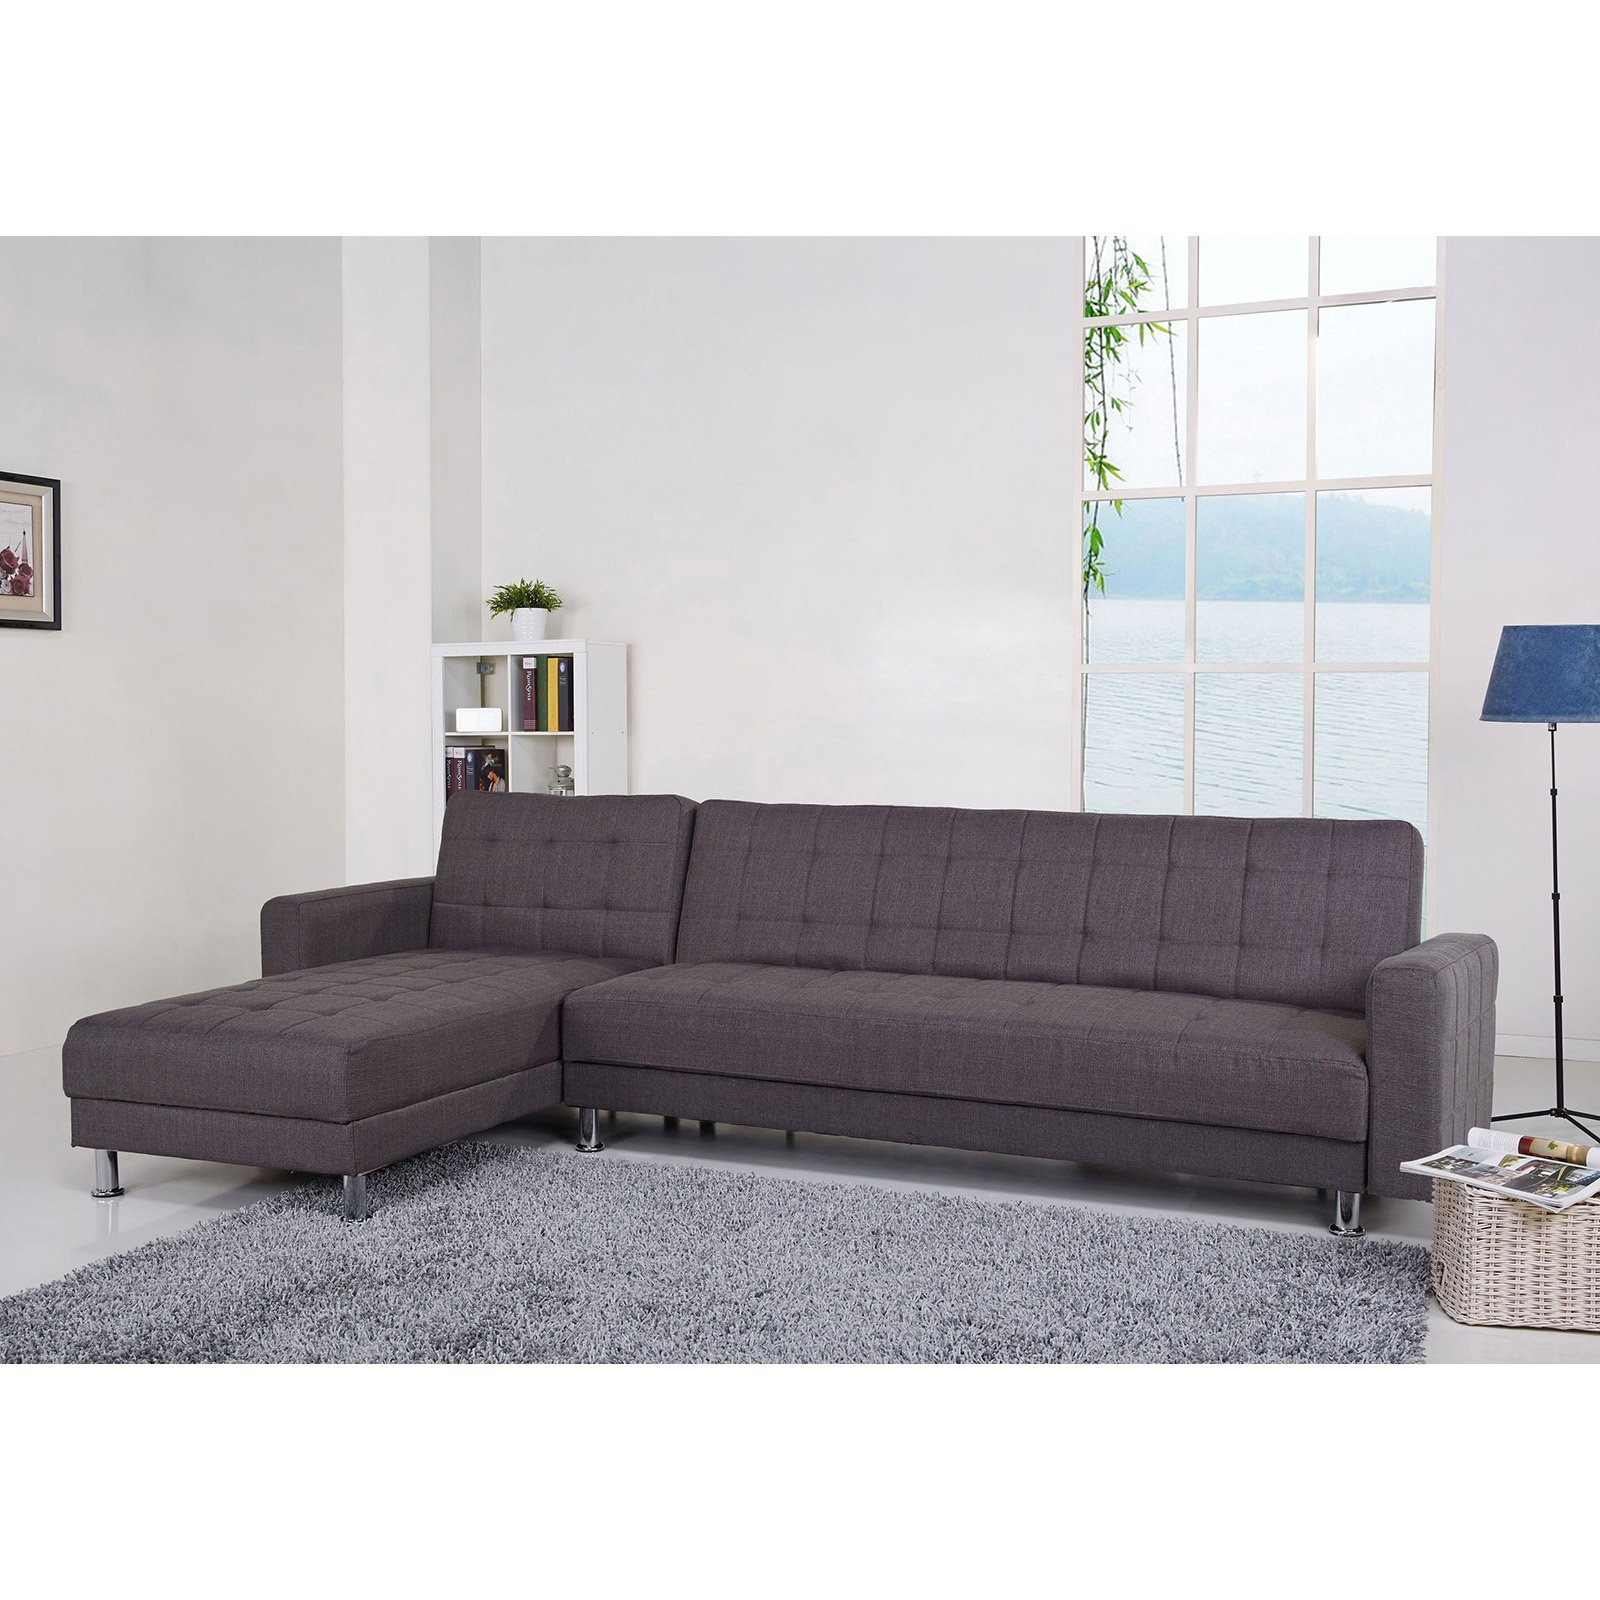 Gold Sparrow Frankfort Fabric Convertible Sectional Sofa